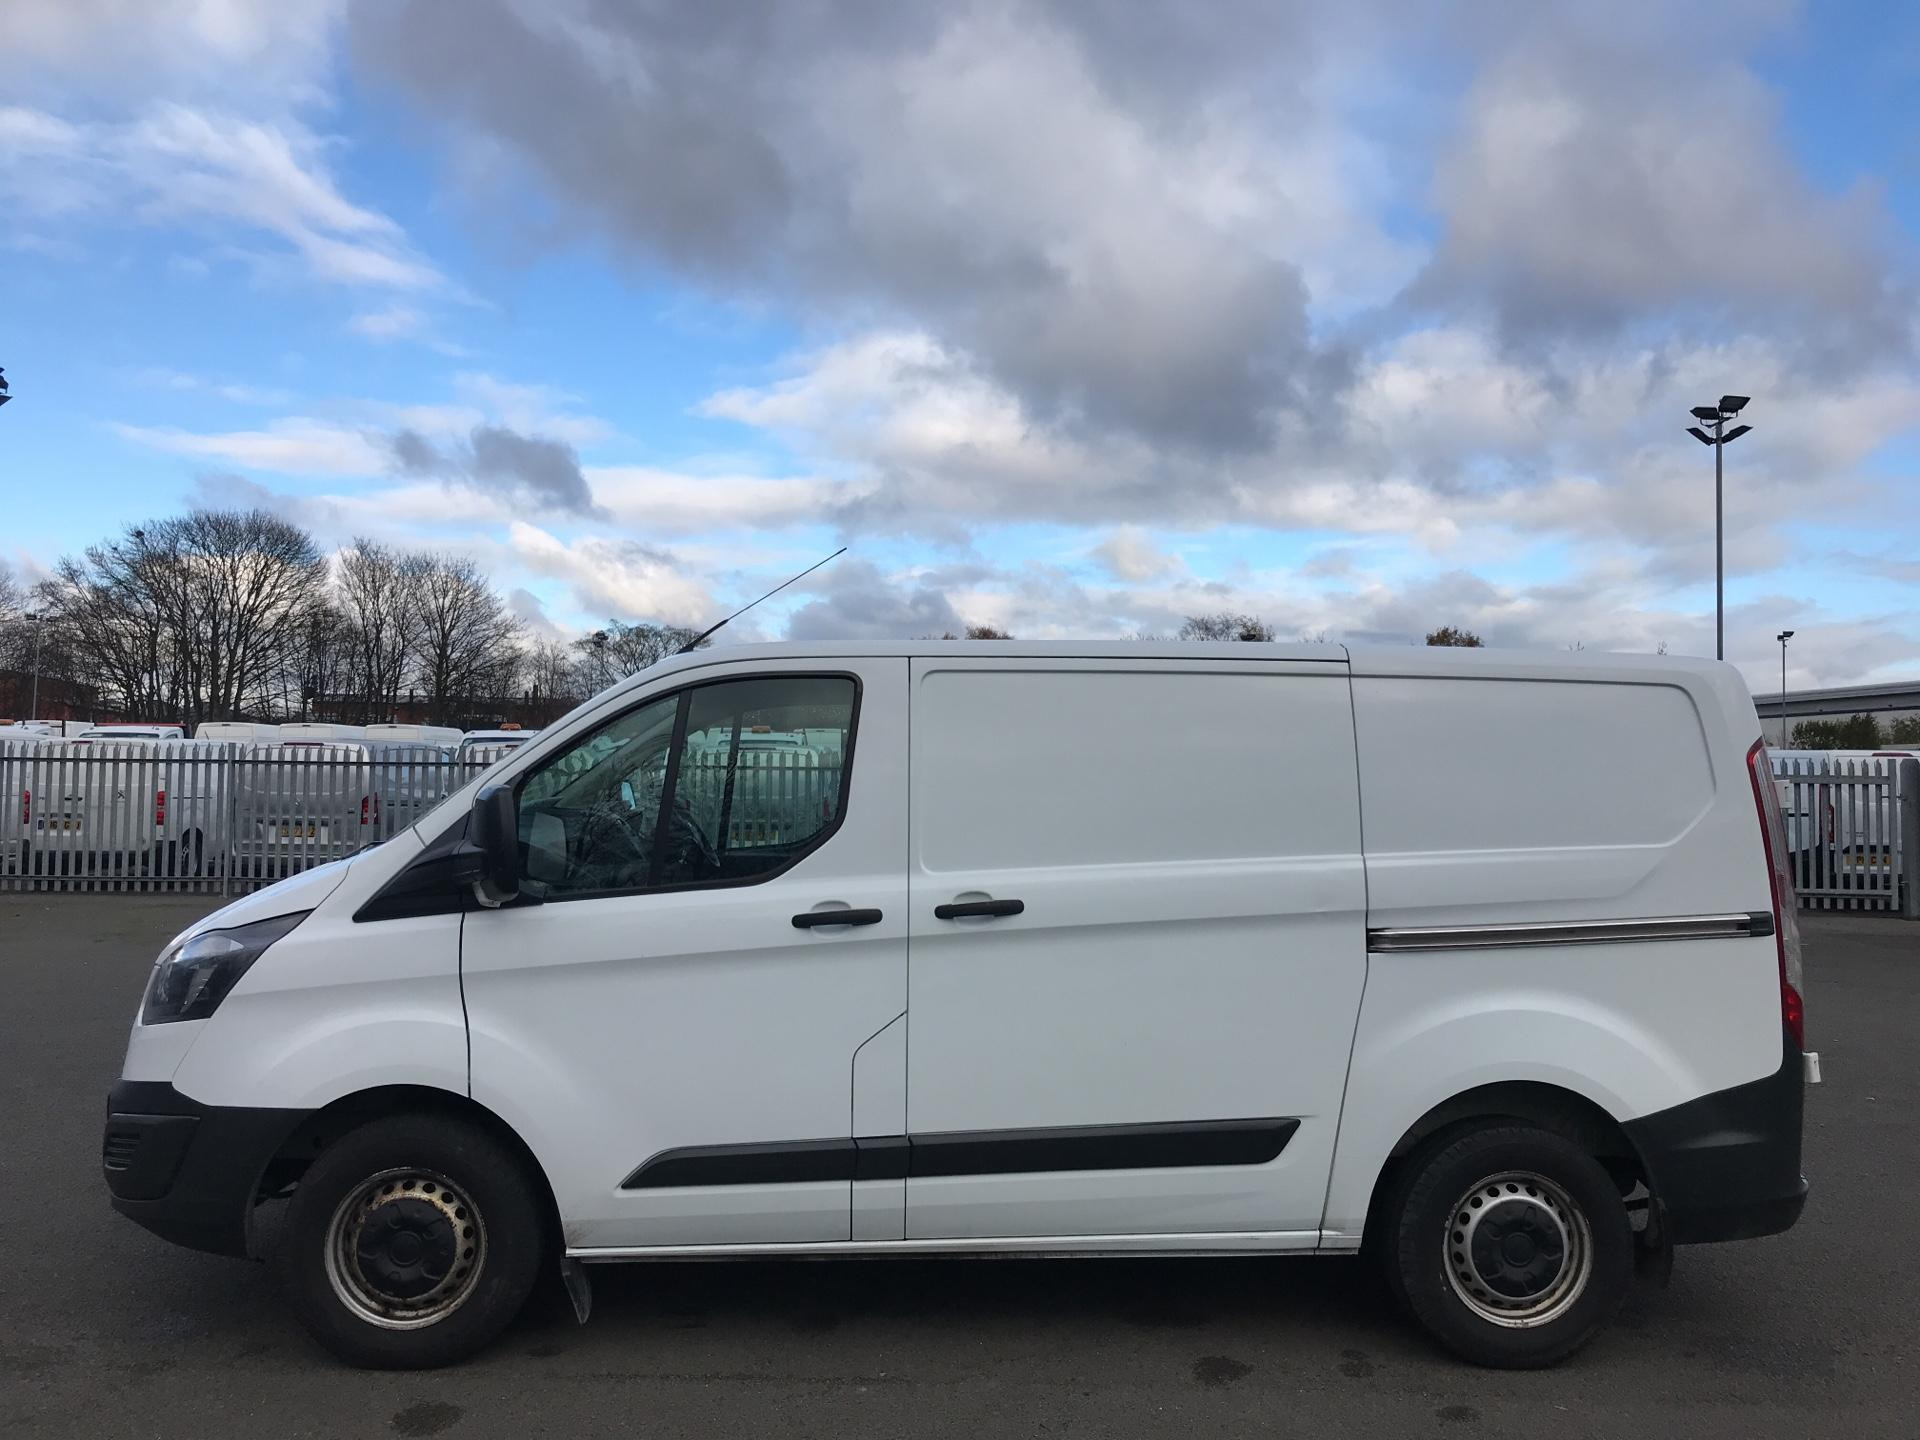 2015 Ford Transit Custom 290 L1 DIESEL FWD 2.2  TDCI 100PS LOW ROOF VAN EURO 5 *VALUE RANGE VEHICLE - CONDITION REFLECTED IN PRICE* (NK15XRE) Image 6